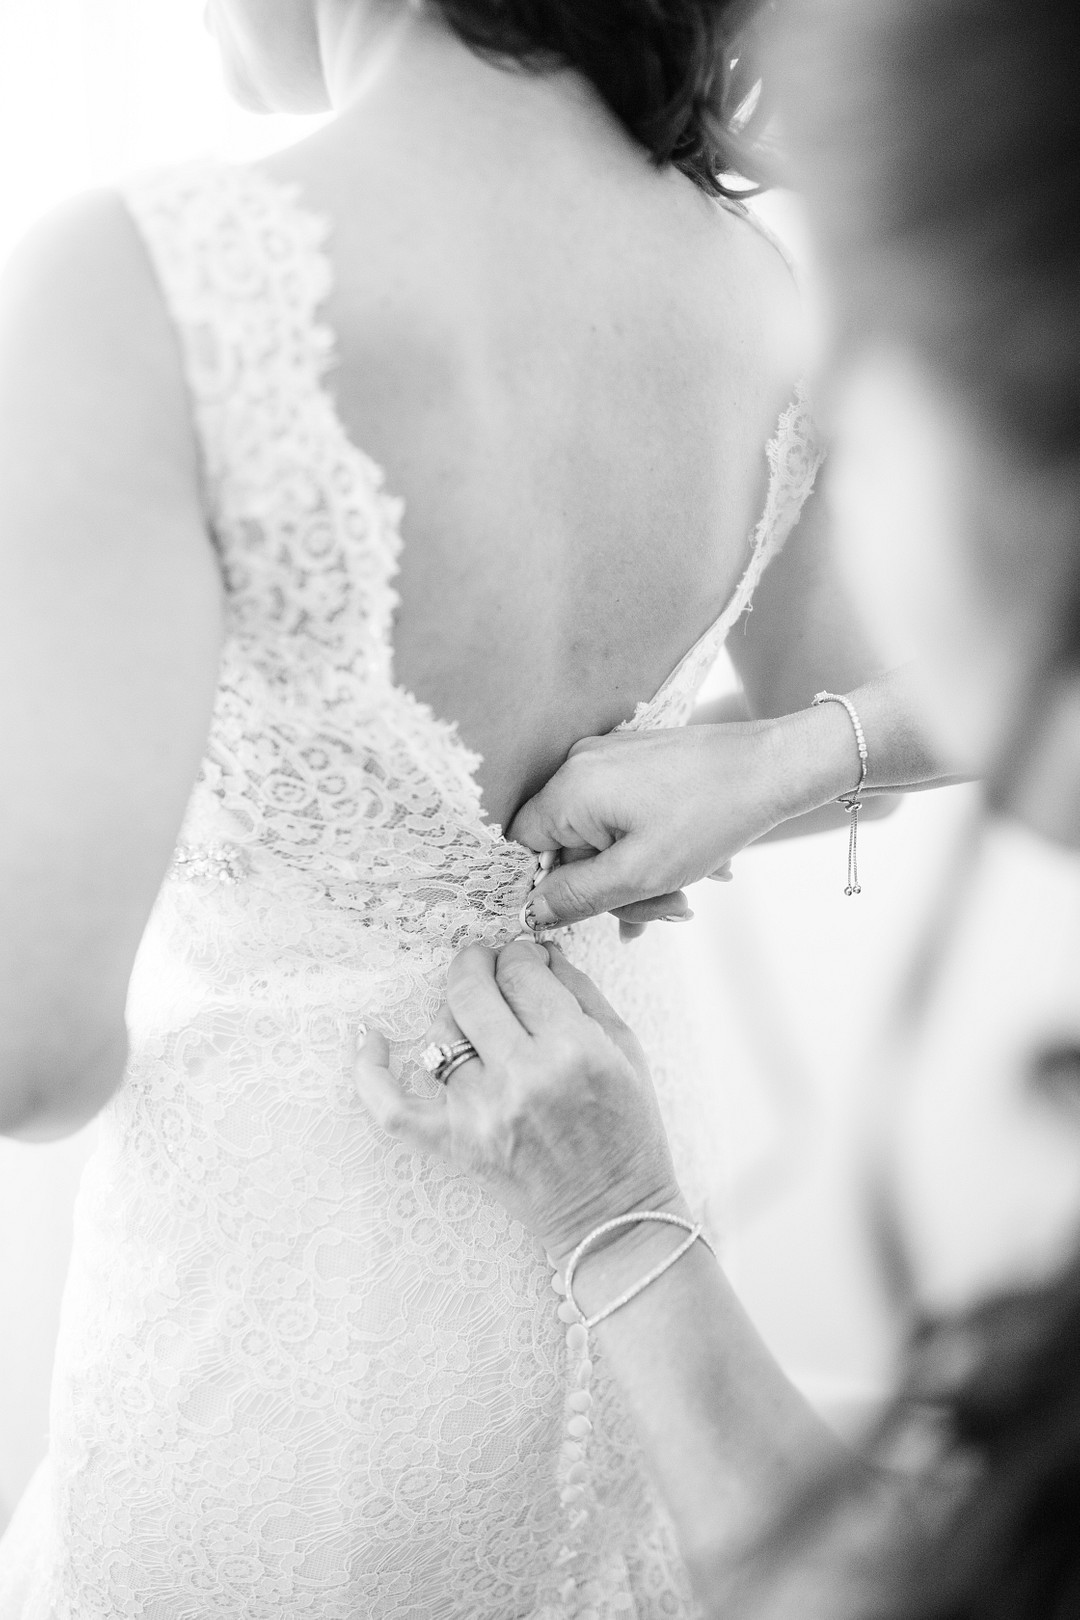 Romantic vineyard wedding at Valley Roads Vineyard in Afton, VA. Photographed by Katherine Zell Photography. | Honeysuckle Brides: A Southern Wedding Blog